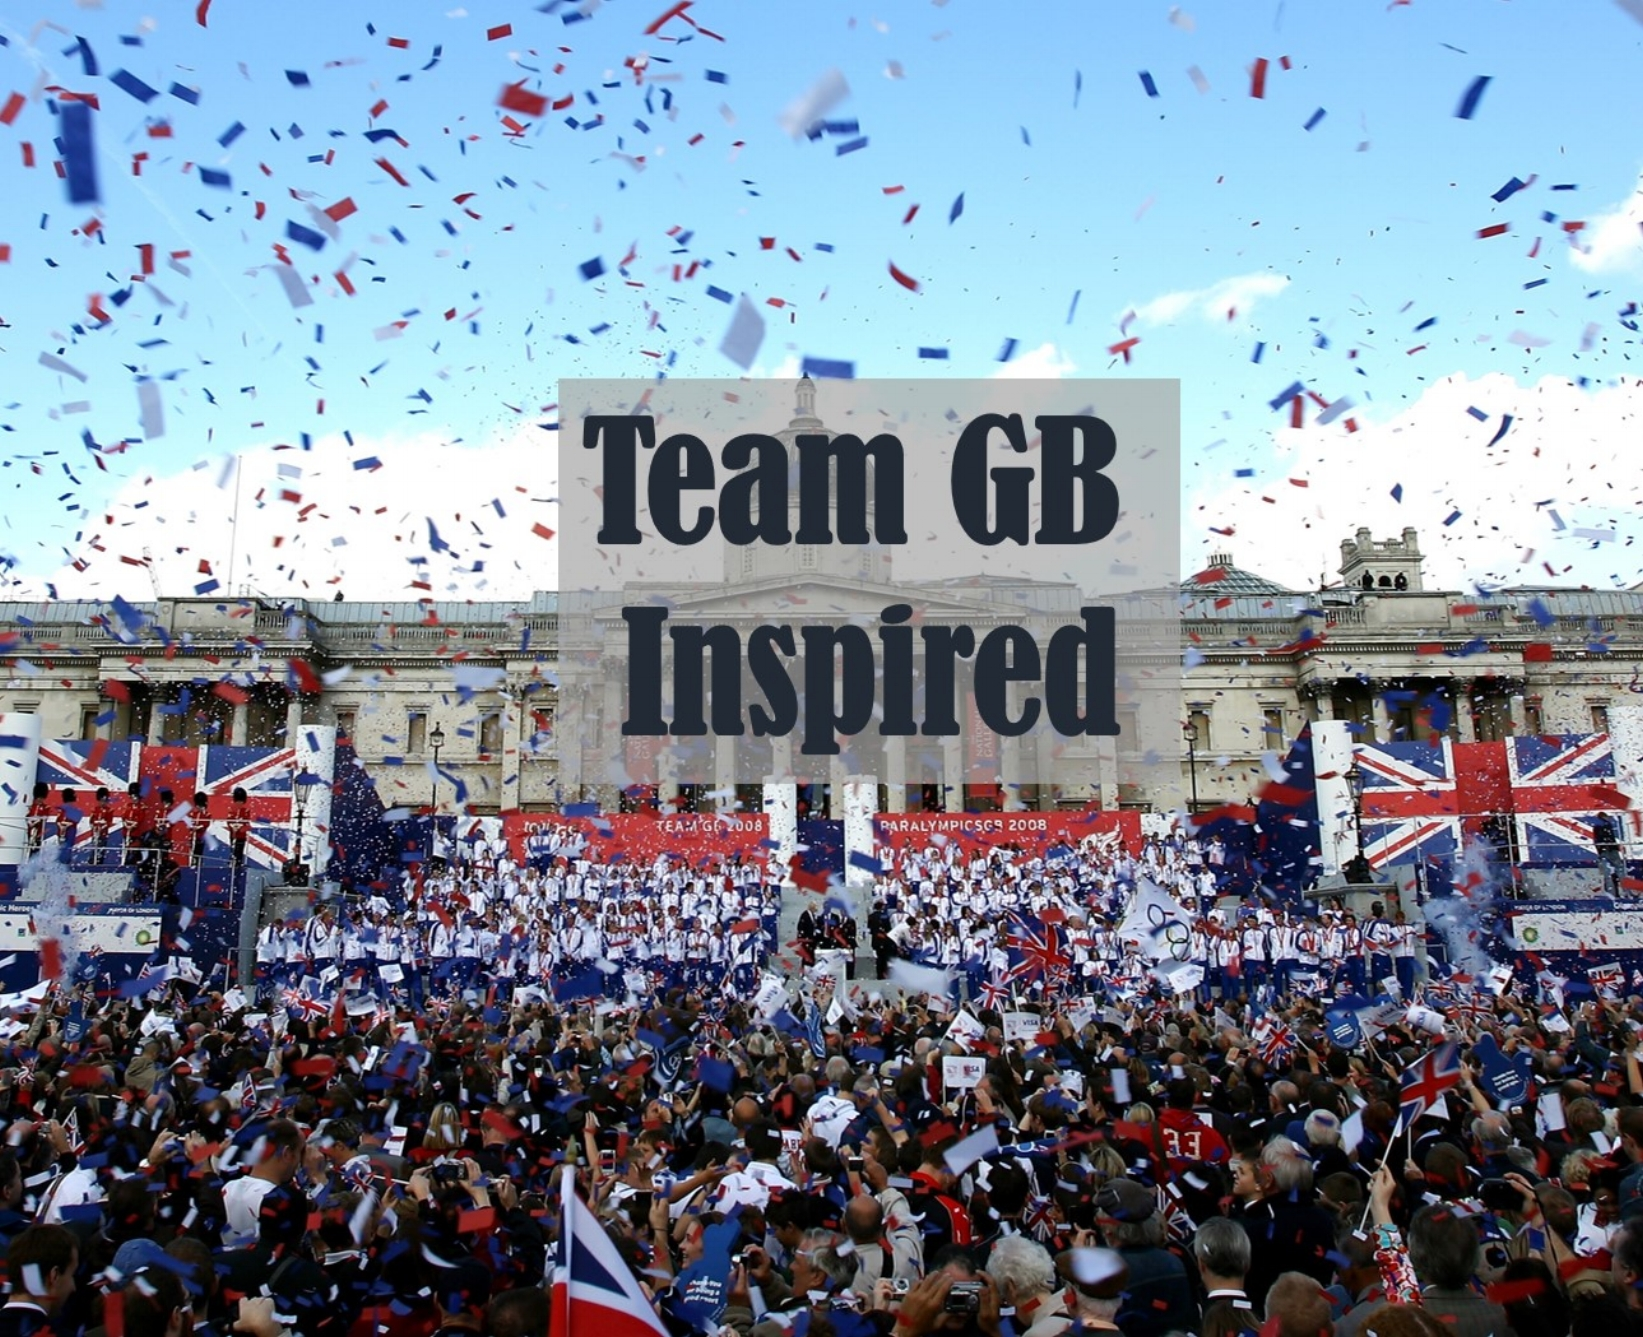 LOCATED IN ICONIC OLYMPIC VENUES IN LONDON, WE IMMERSE YOU INTO THE WORLD OF TEAM GB ATHLETE'S QUEST FOR WINNING WHILST LOOKING TO STRIKE LIFE BALANCE.